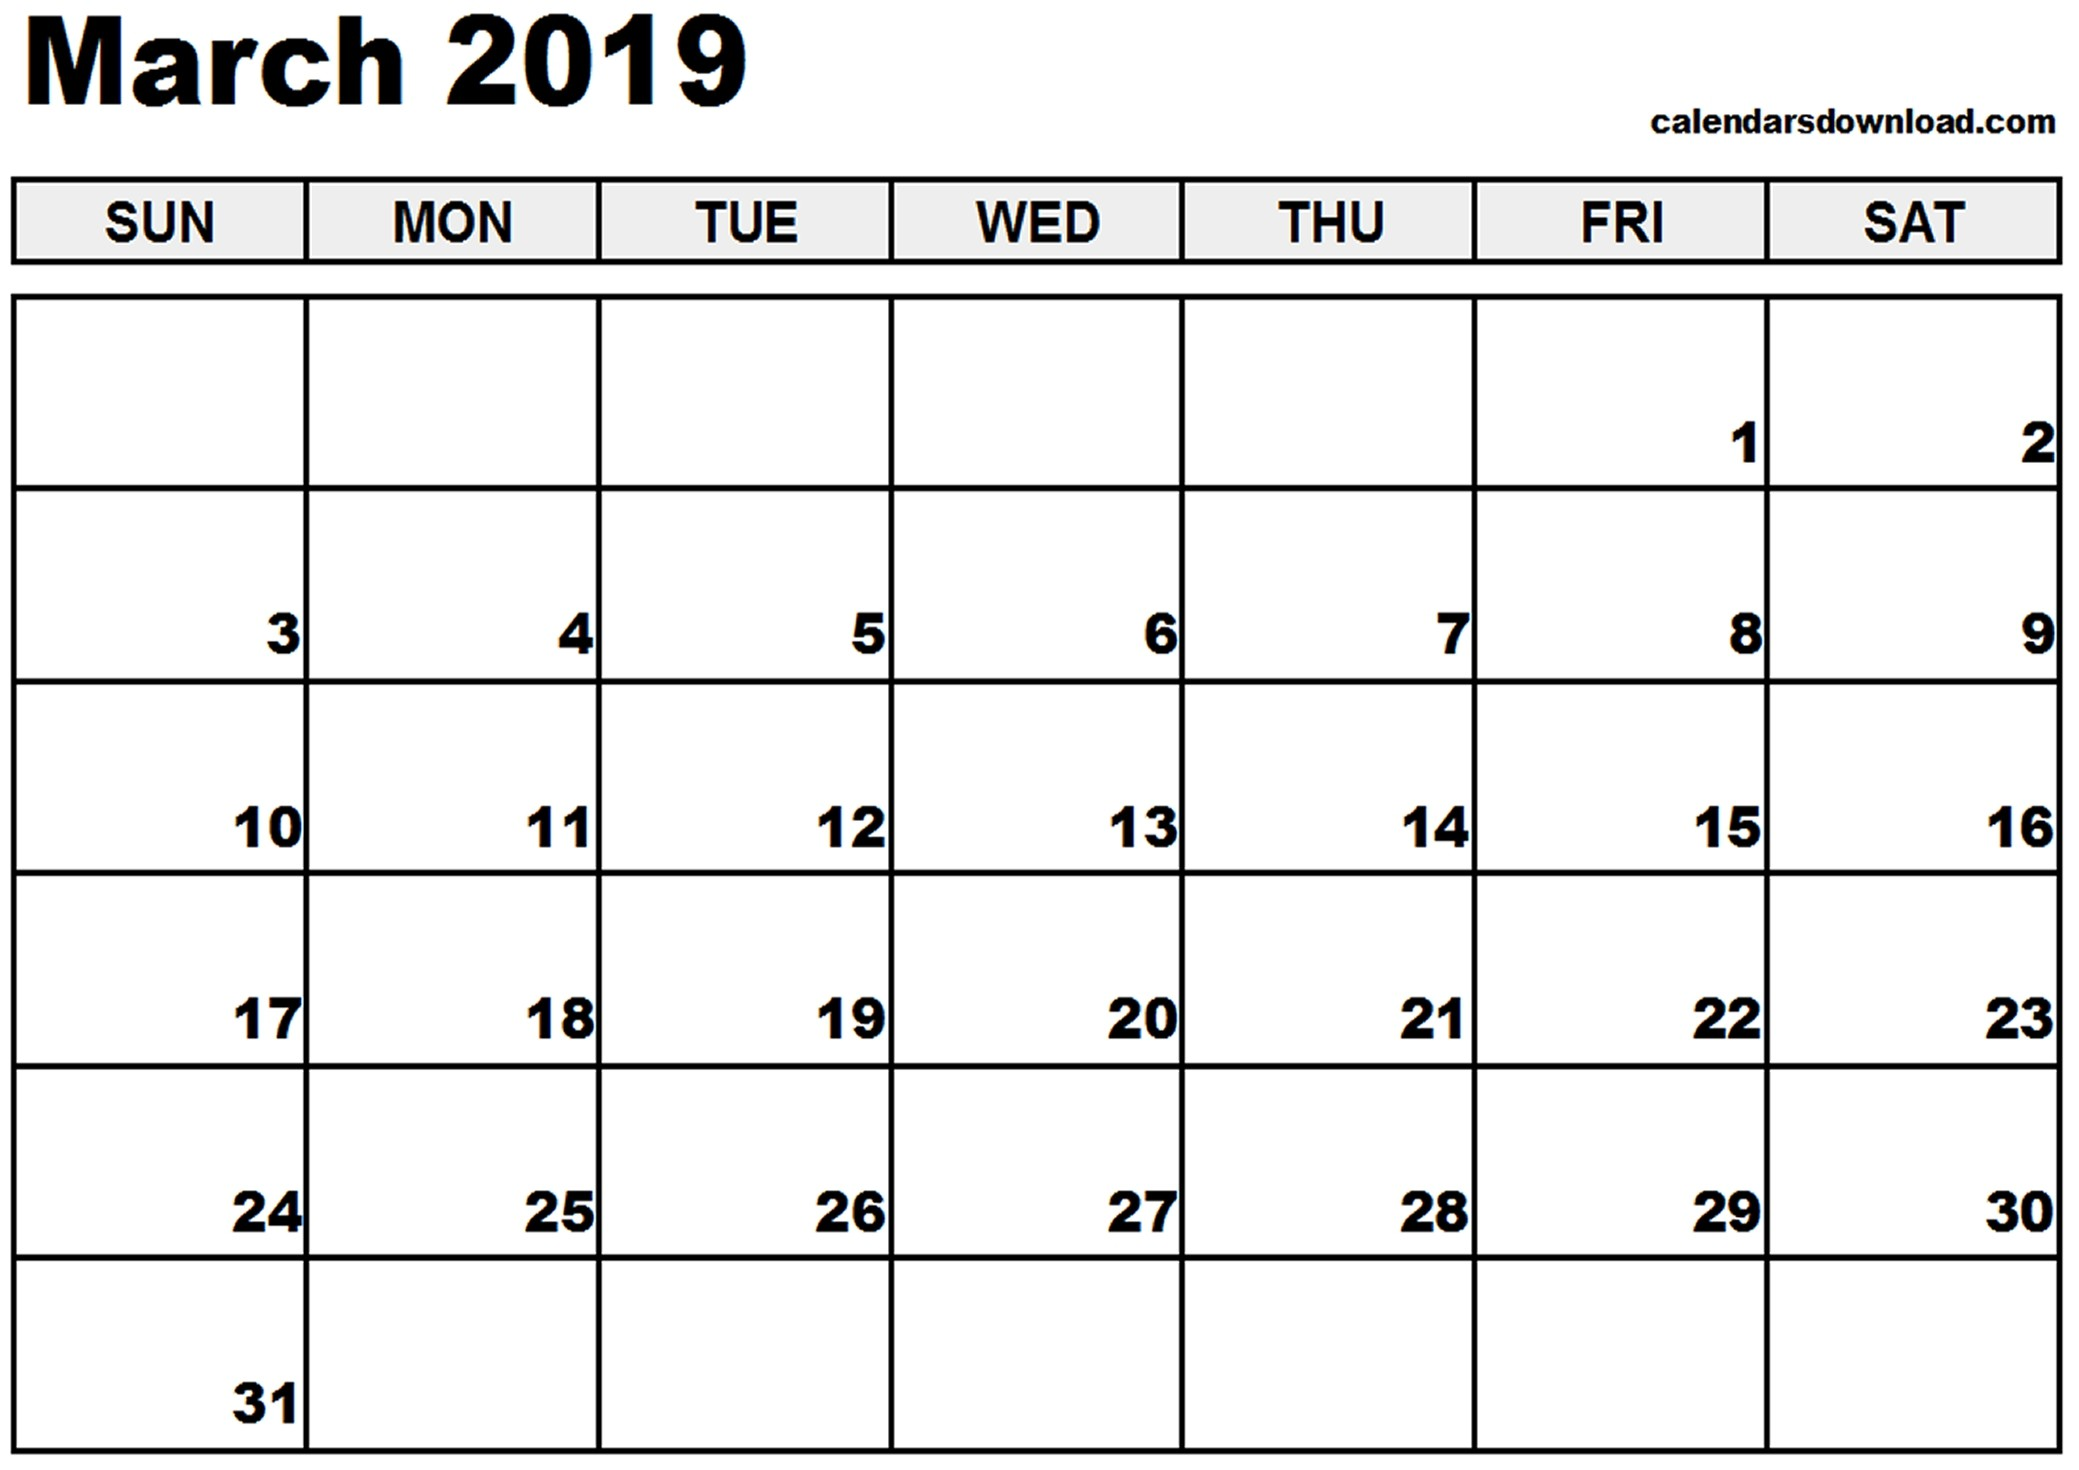 March Calendar 2019 Más Populares March 2019 Calendar Pdf Word Excel Of March Calendar 2019 Más Recientes March 2019 Wall Calendar Colorful Sketch Horizontal Template Letter